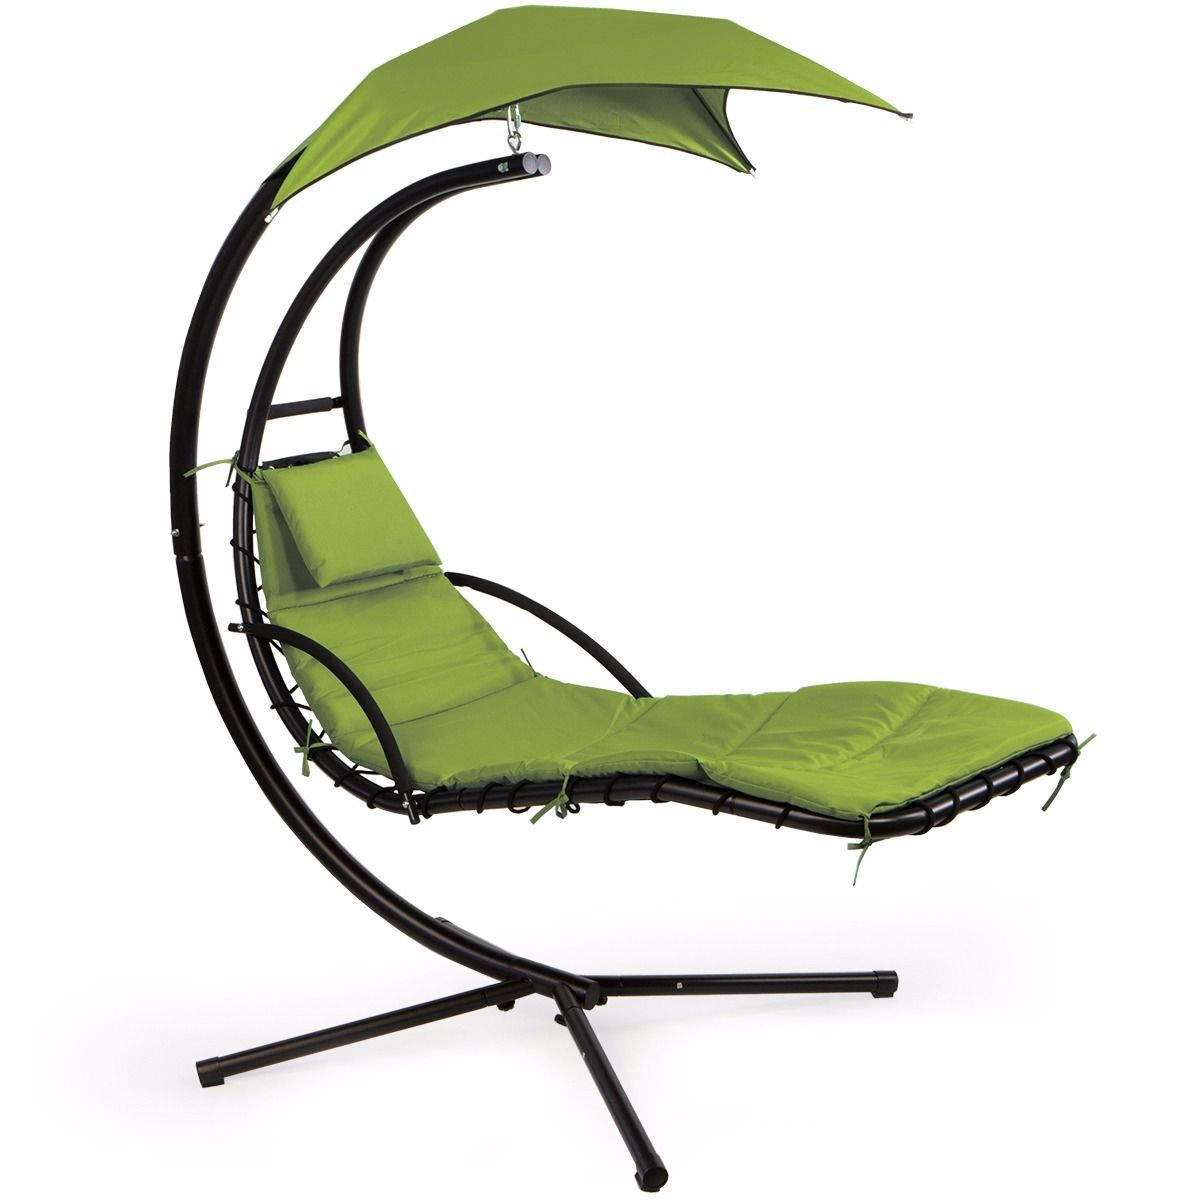 Barton Patio Hanging Helicopter dream Lounger Chair Stand ... on Hanging Helicopter Dream Lounger Chair id=89879